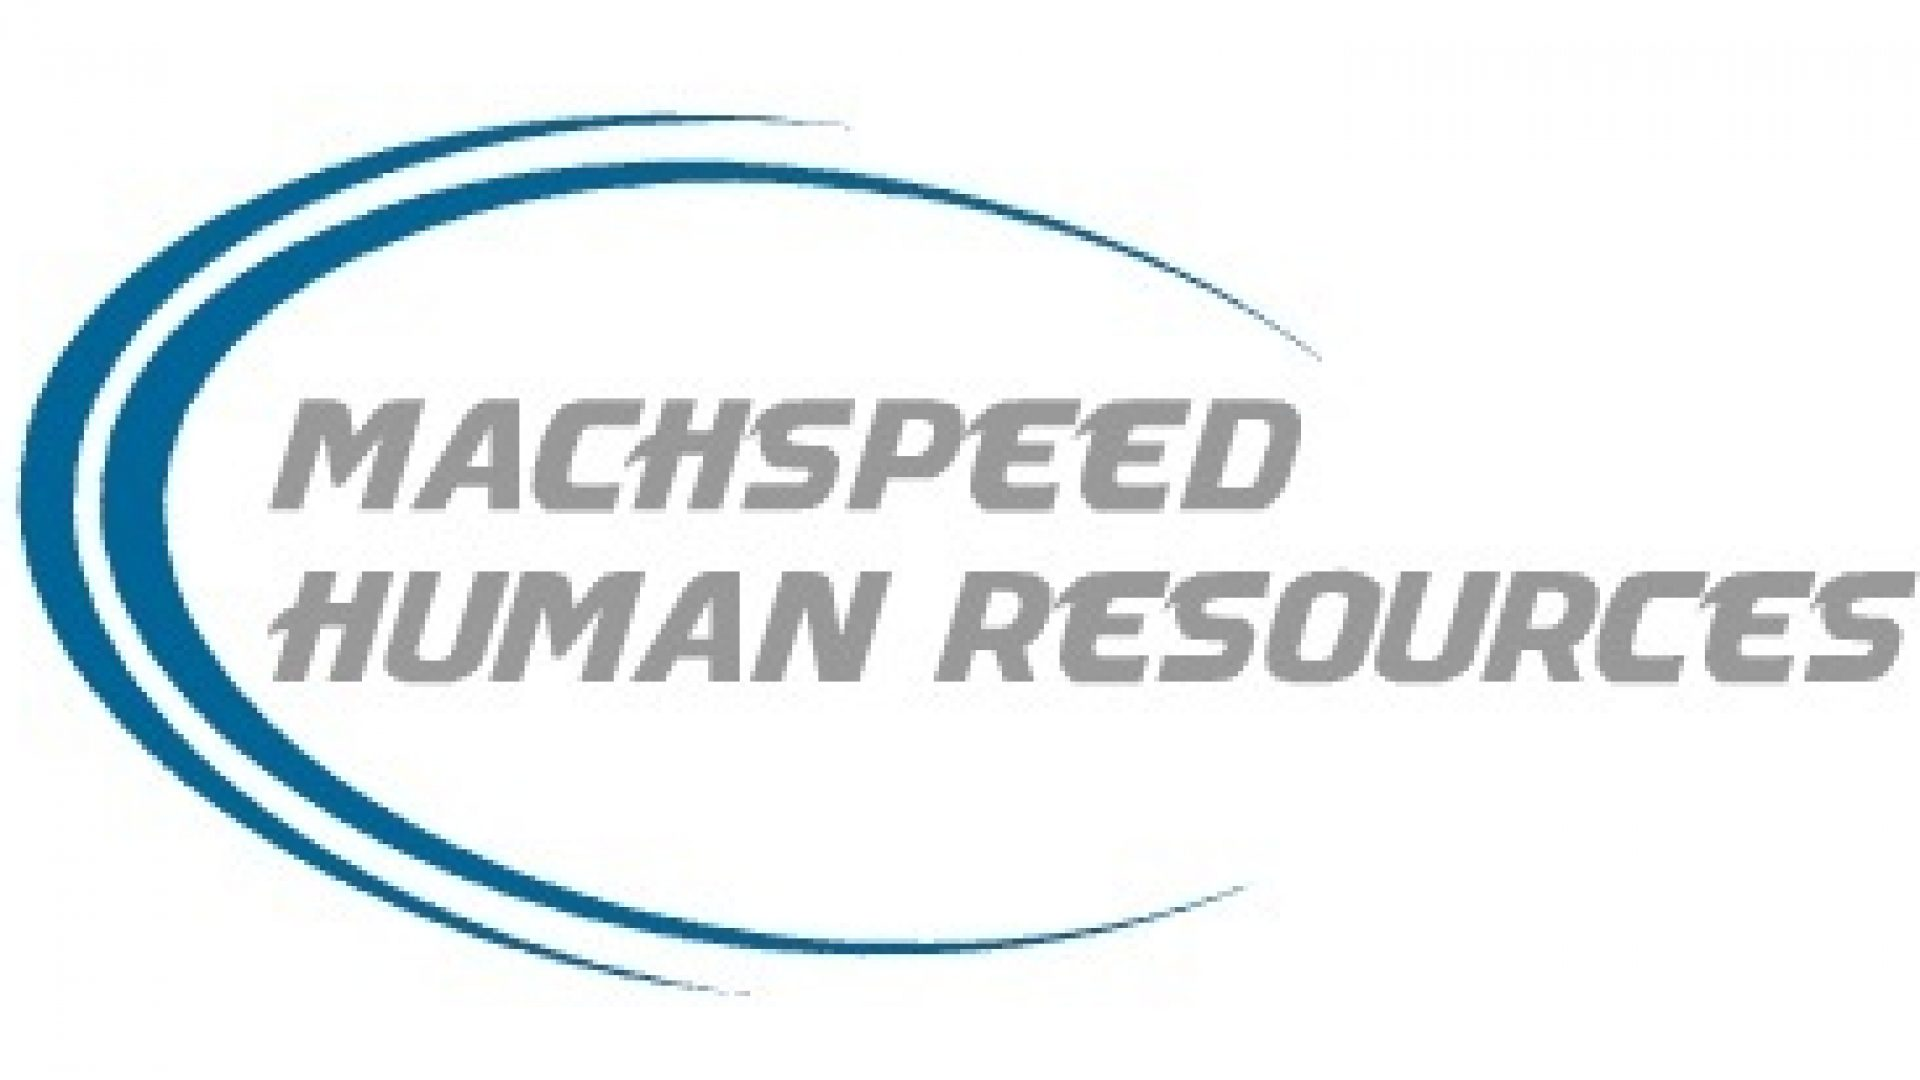 Machspeed Human Resources